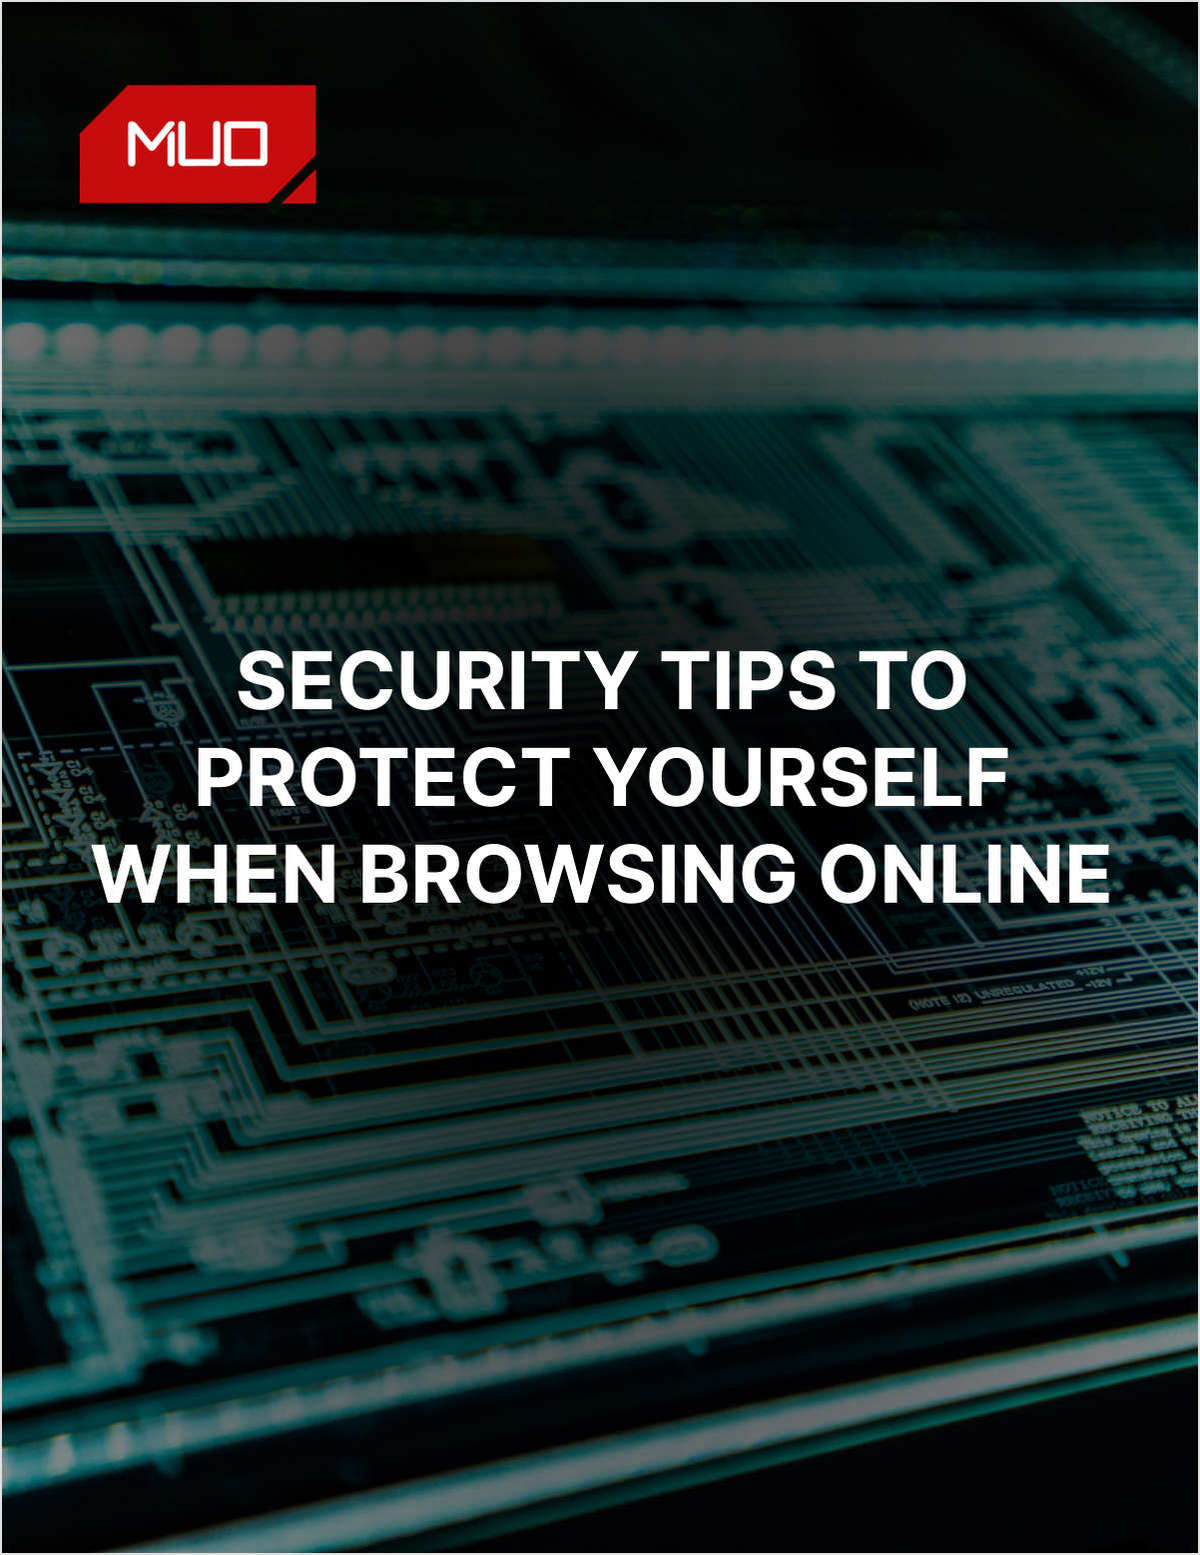 50+ Security Tips to Protect Yourself When Browsing Online